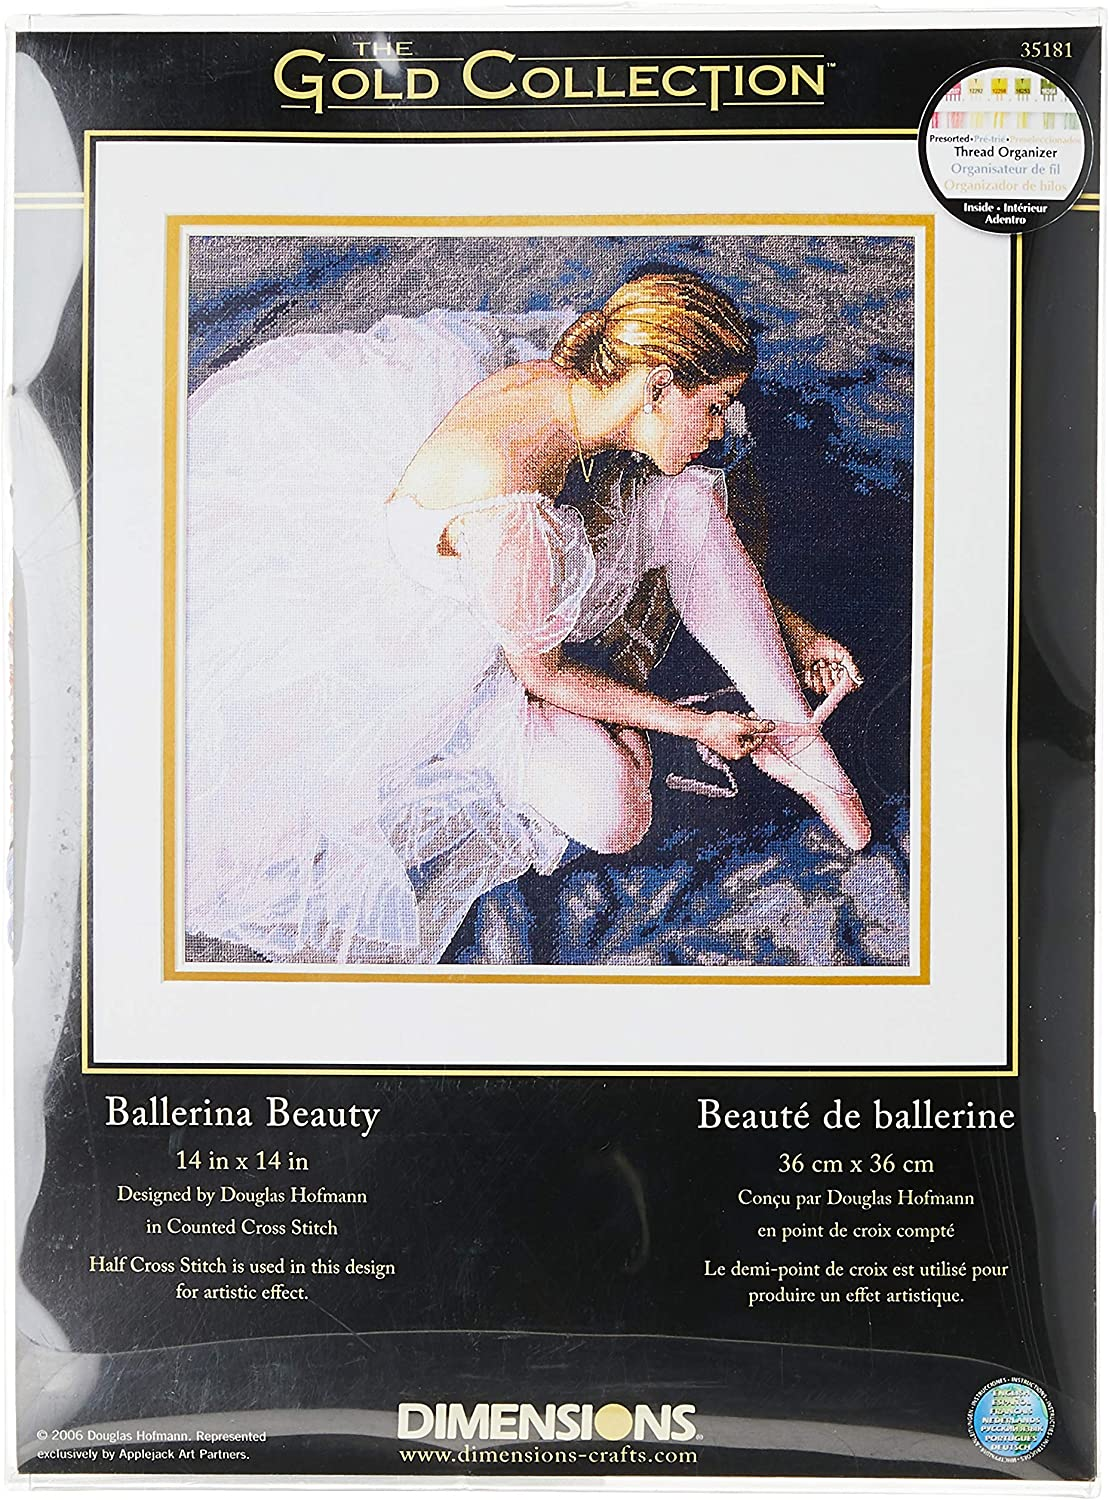 Dimensions Gold Collection Counted Cross Stitch Kit, Beautiful Ballerina, 18 Count White Aida, 14'' x 14''